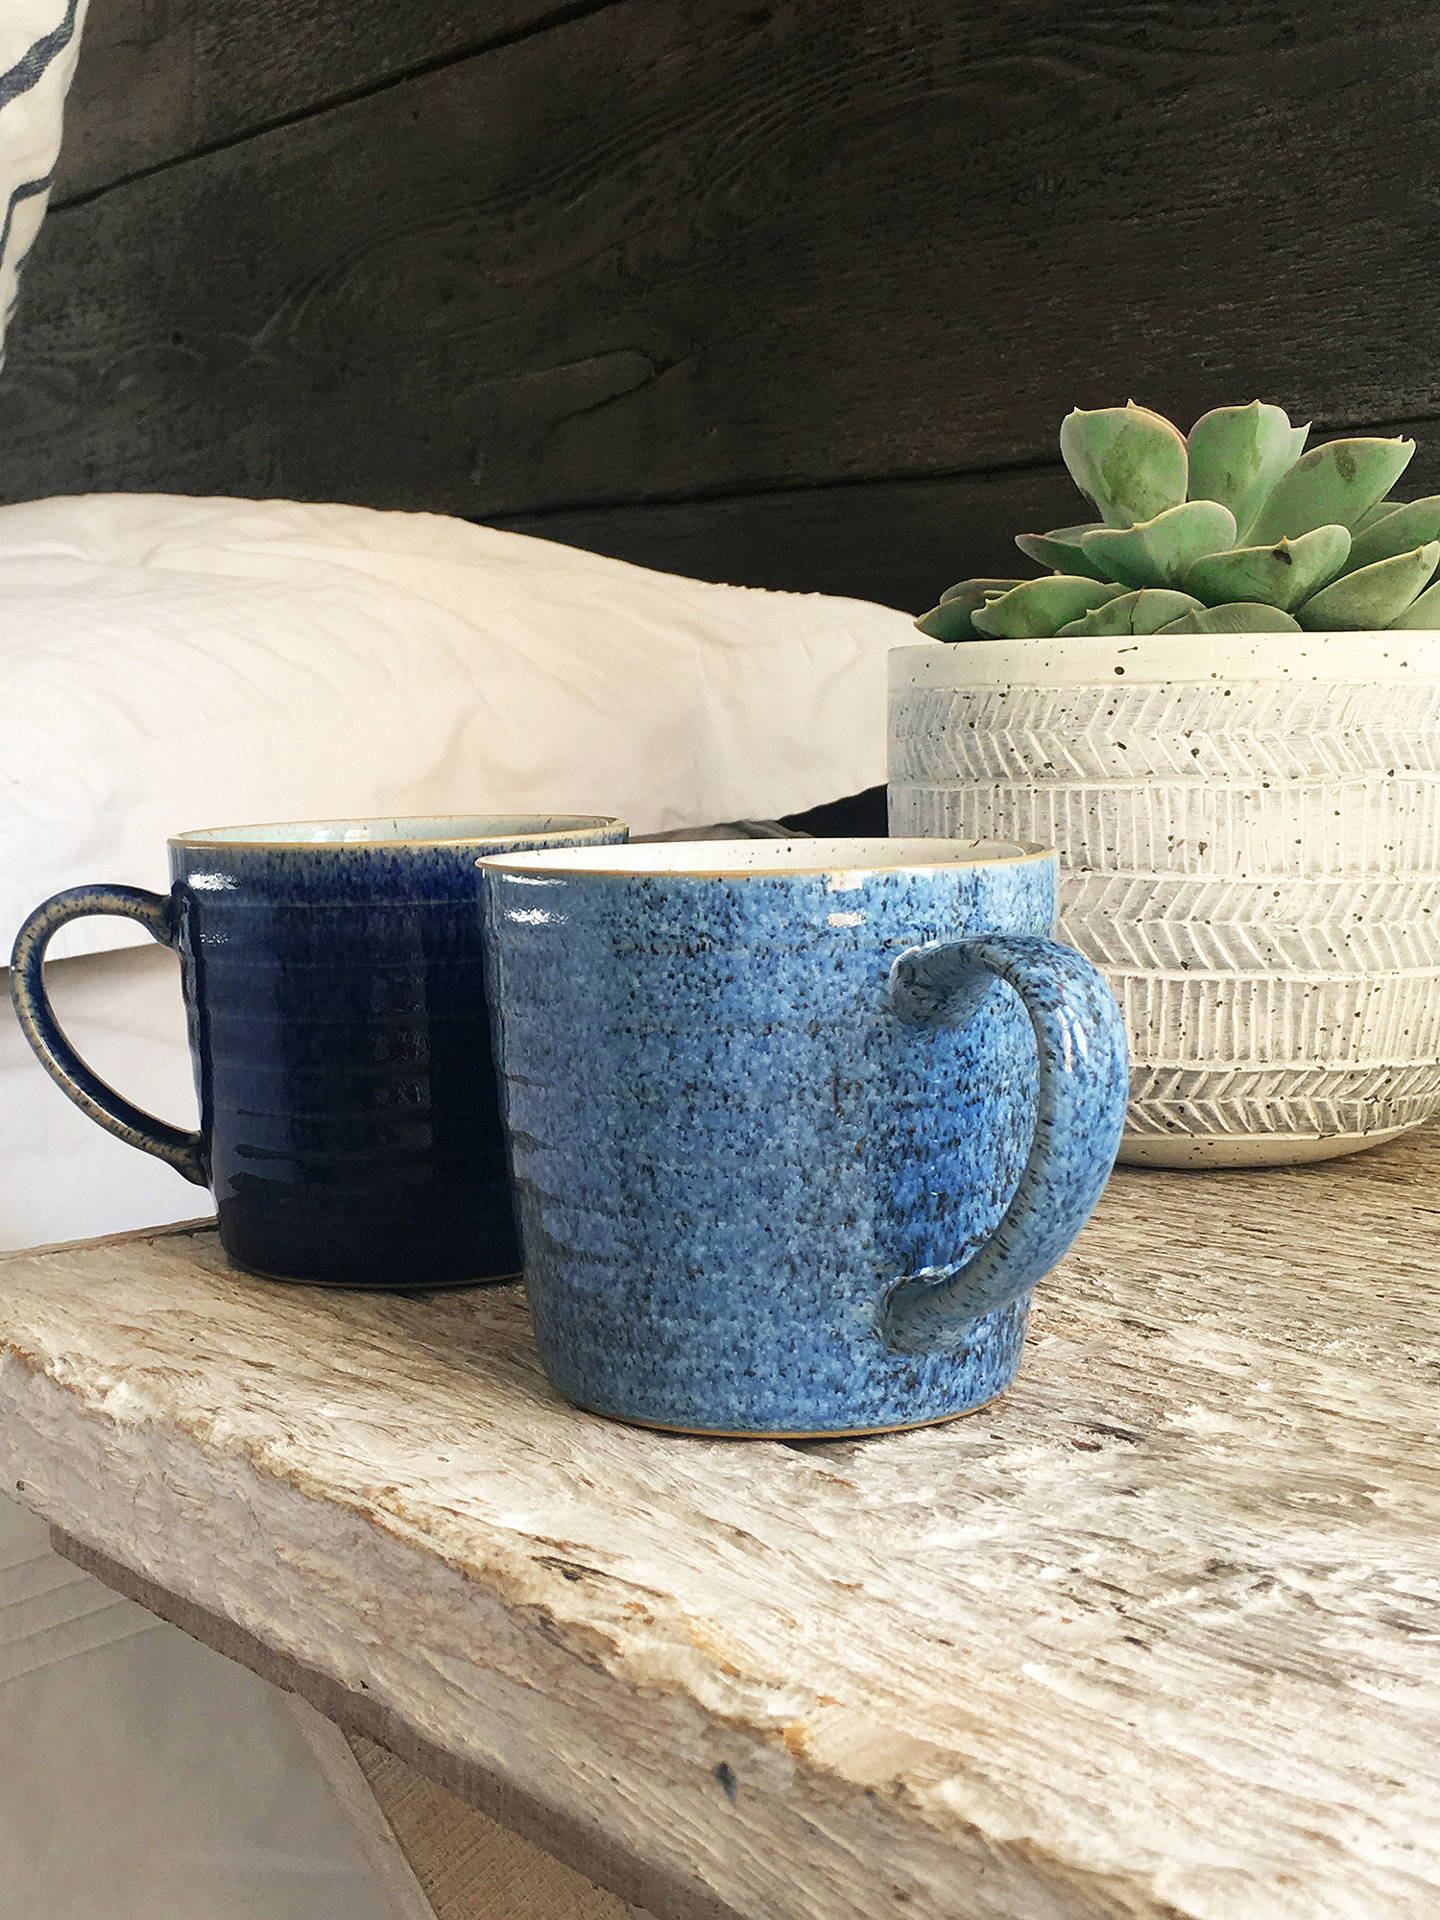 BuyDenby Studio Blue Ridged Mugs, 400ml, Set of 2 Online at johnlewis.com